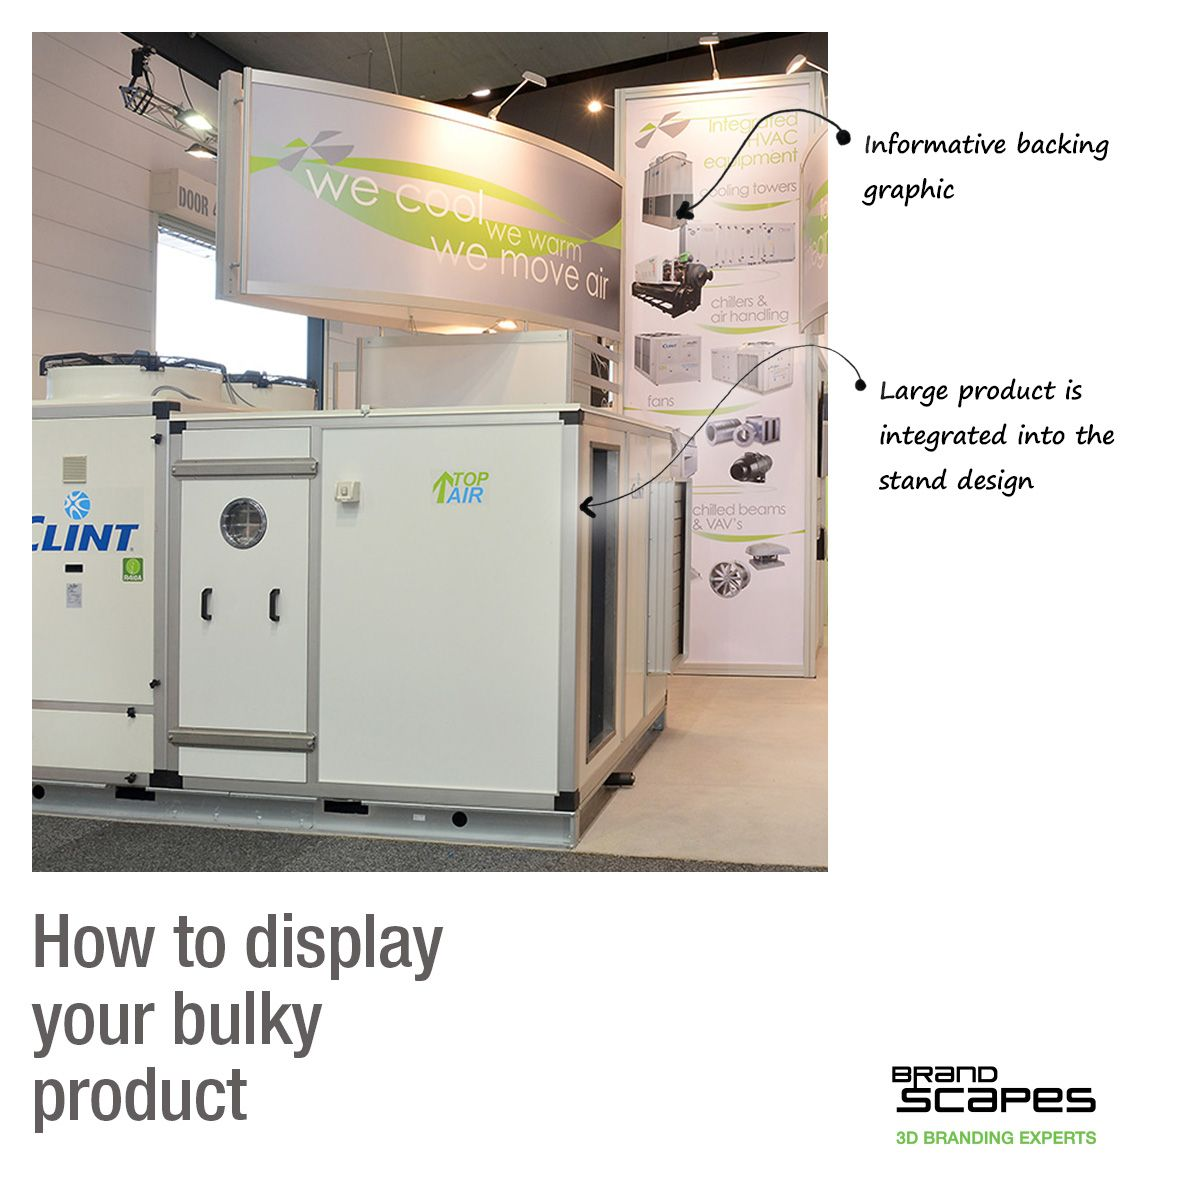 How to display your bulky or large products #eventtip #exhibition #tradeshow #display  Exhibitions and display Melbourne Sydney Brisbane Adelaide  #design #3dbranding #brandingexperts #experience #brandenvironment #marketing #spatialdesign #exhibitiondesign #custom #melbournemakers #customstand #standdesign #tradeshowstand #communication #graphicdesign #reclaimedwood #interior #hardwood #woodwork #retaildesign #retail